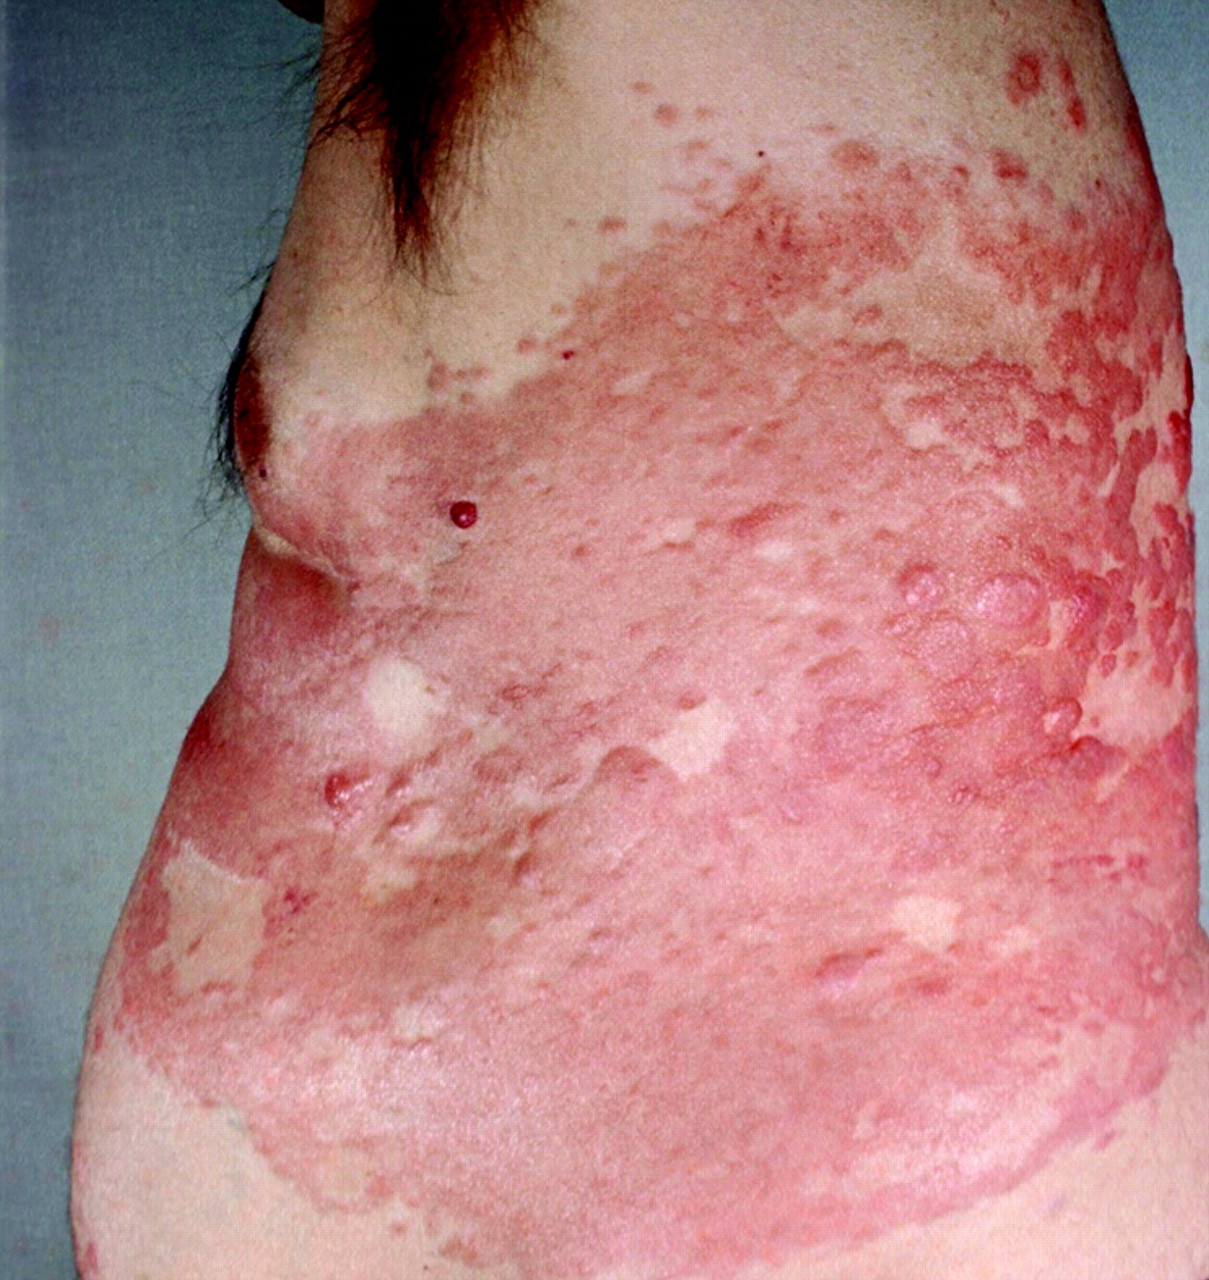 Lymphoproliferative Lesions Of The Skin